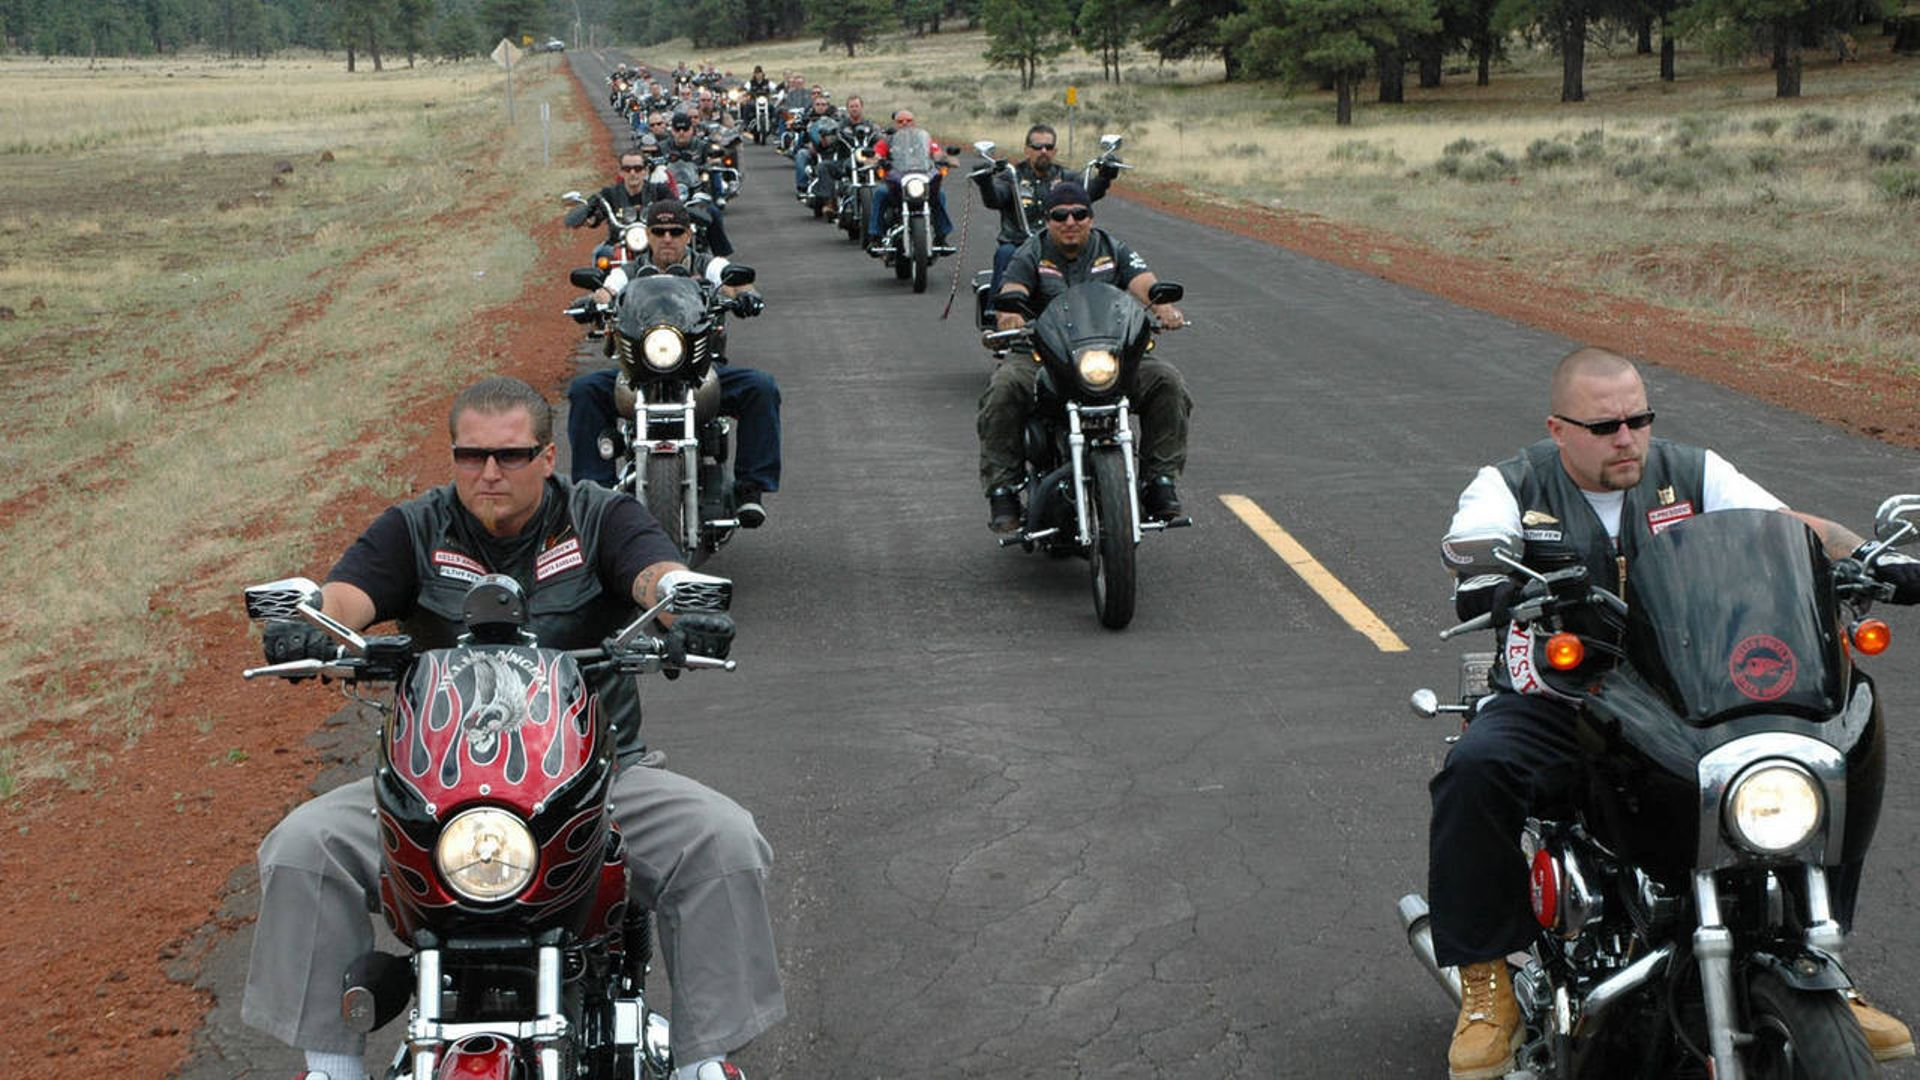 Outlaw Bikers Season 1: Where To Watch Every Episode | Reelgood